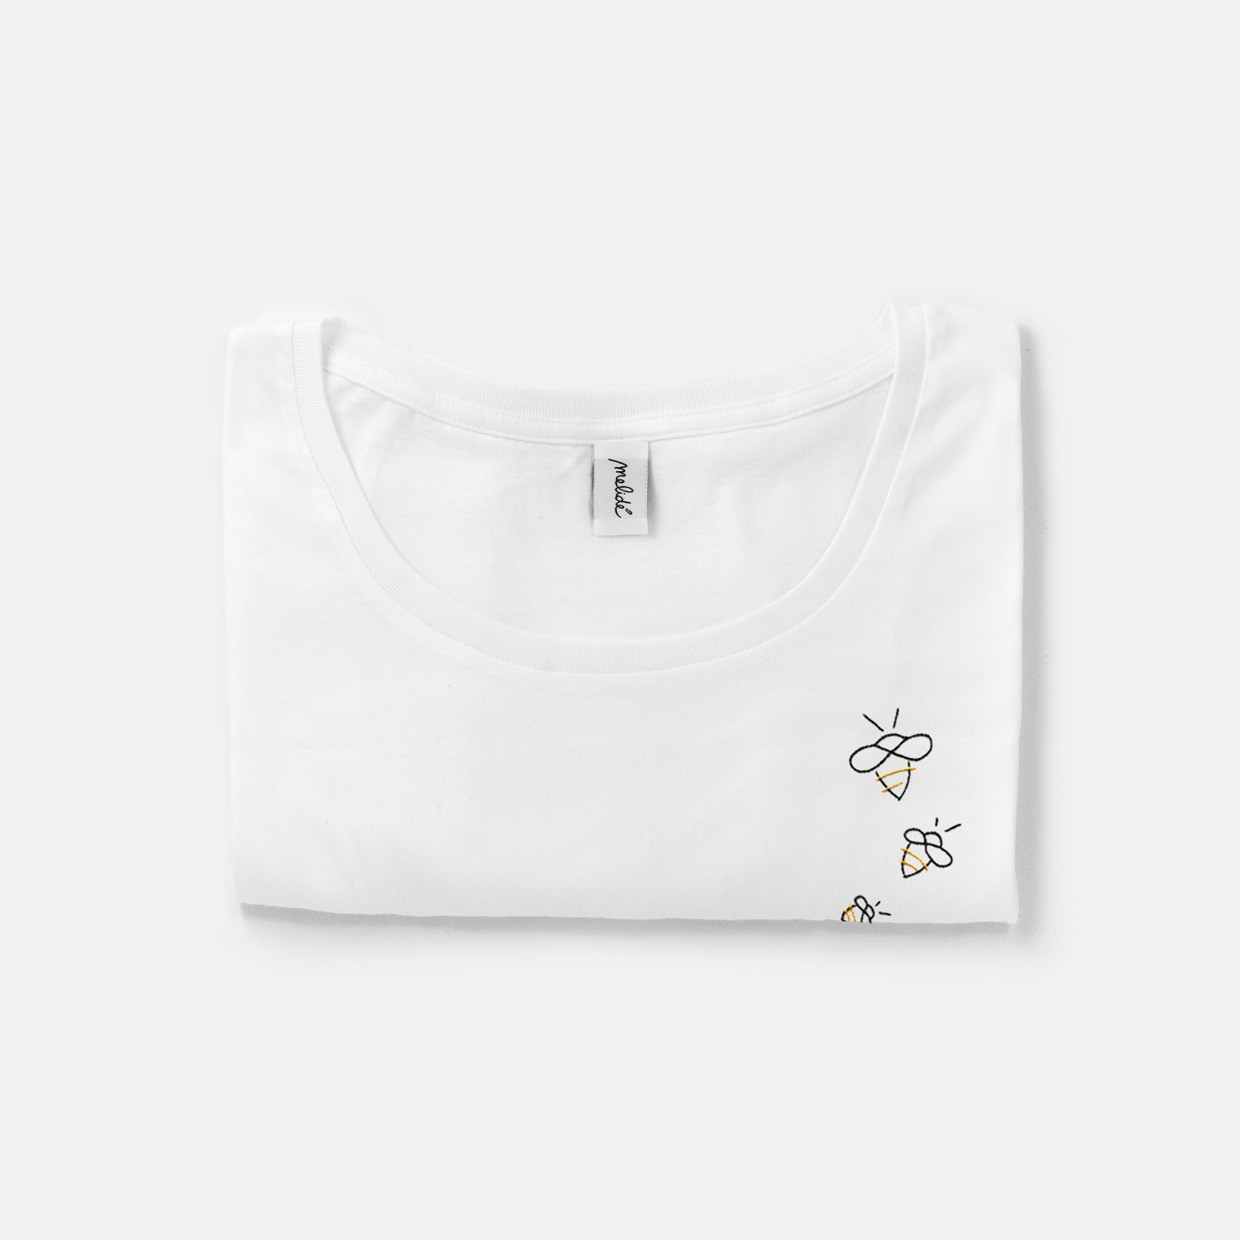 The THREE BEES wide neck tee